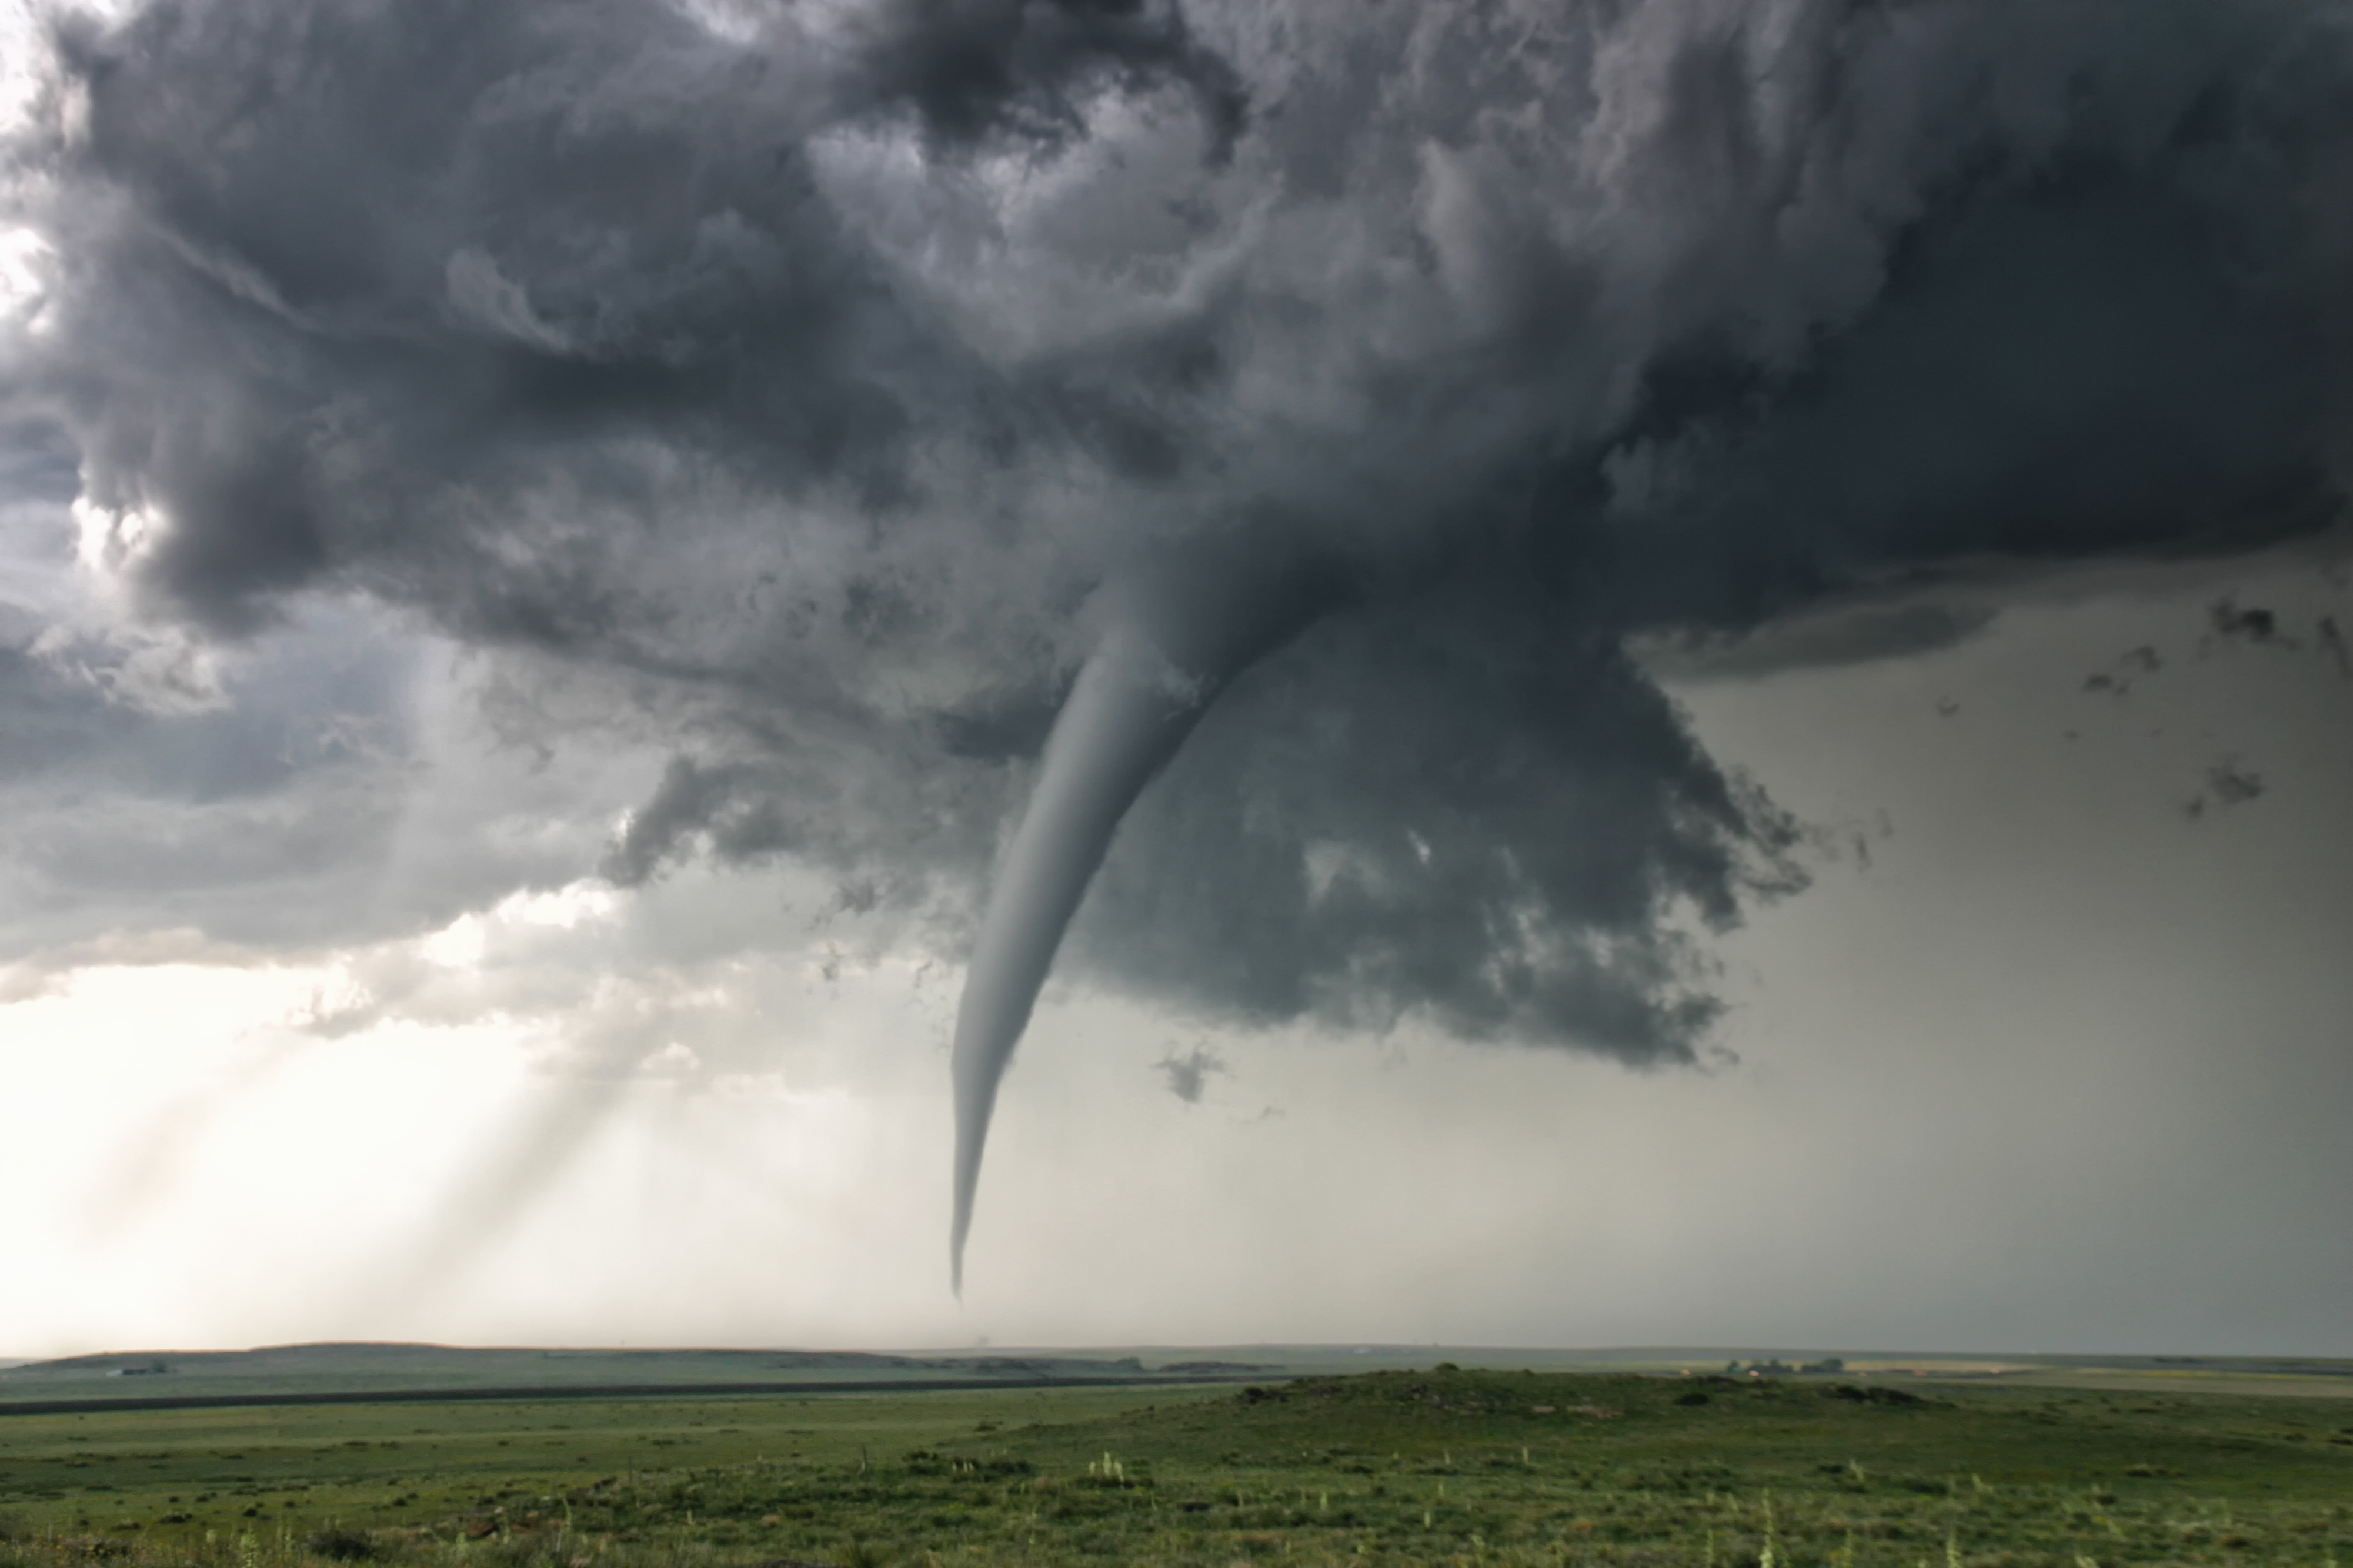 A perfectly needle-like cone tornado reaches out for the ground, Campo, Colorado, USA